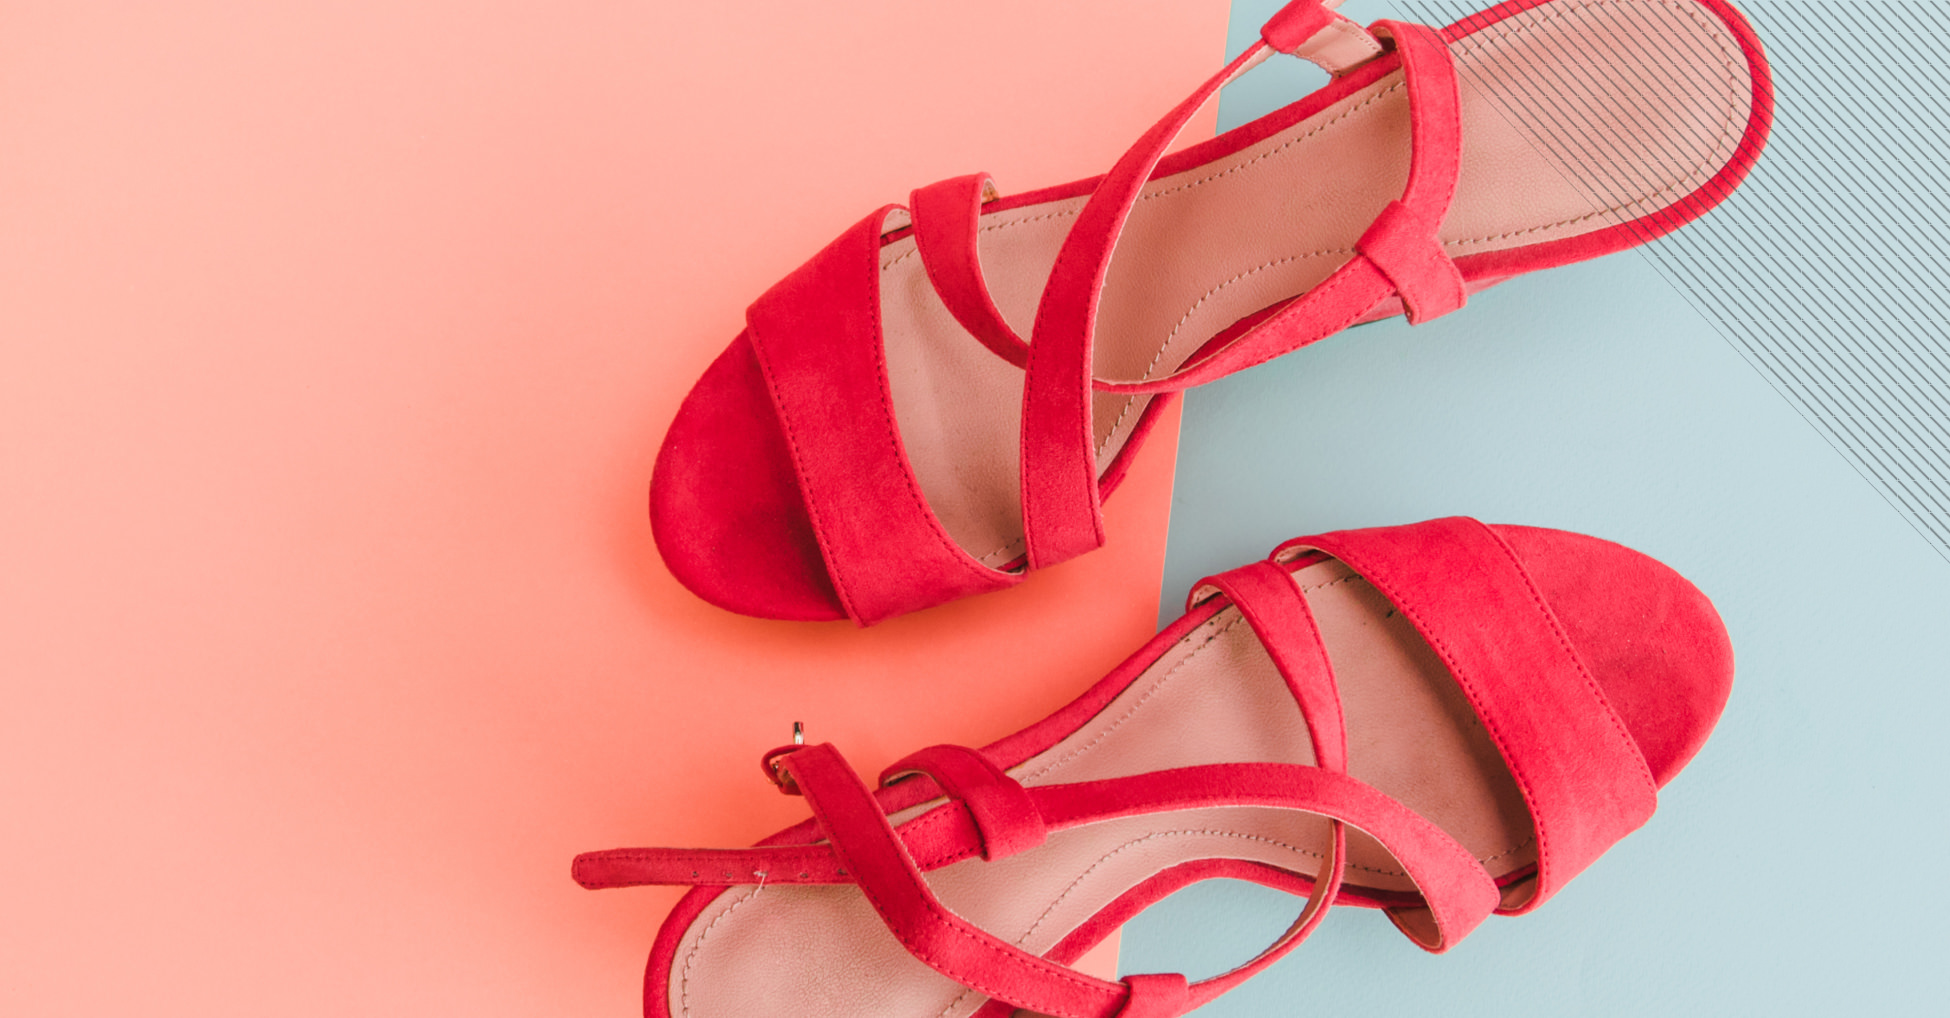 Let's Talk About Beauty: SHOES | Preparada para a chuva